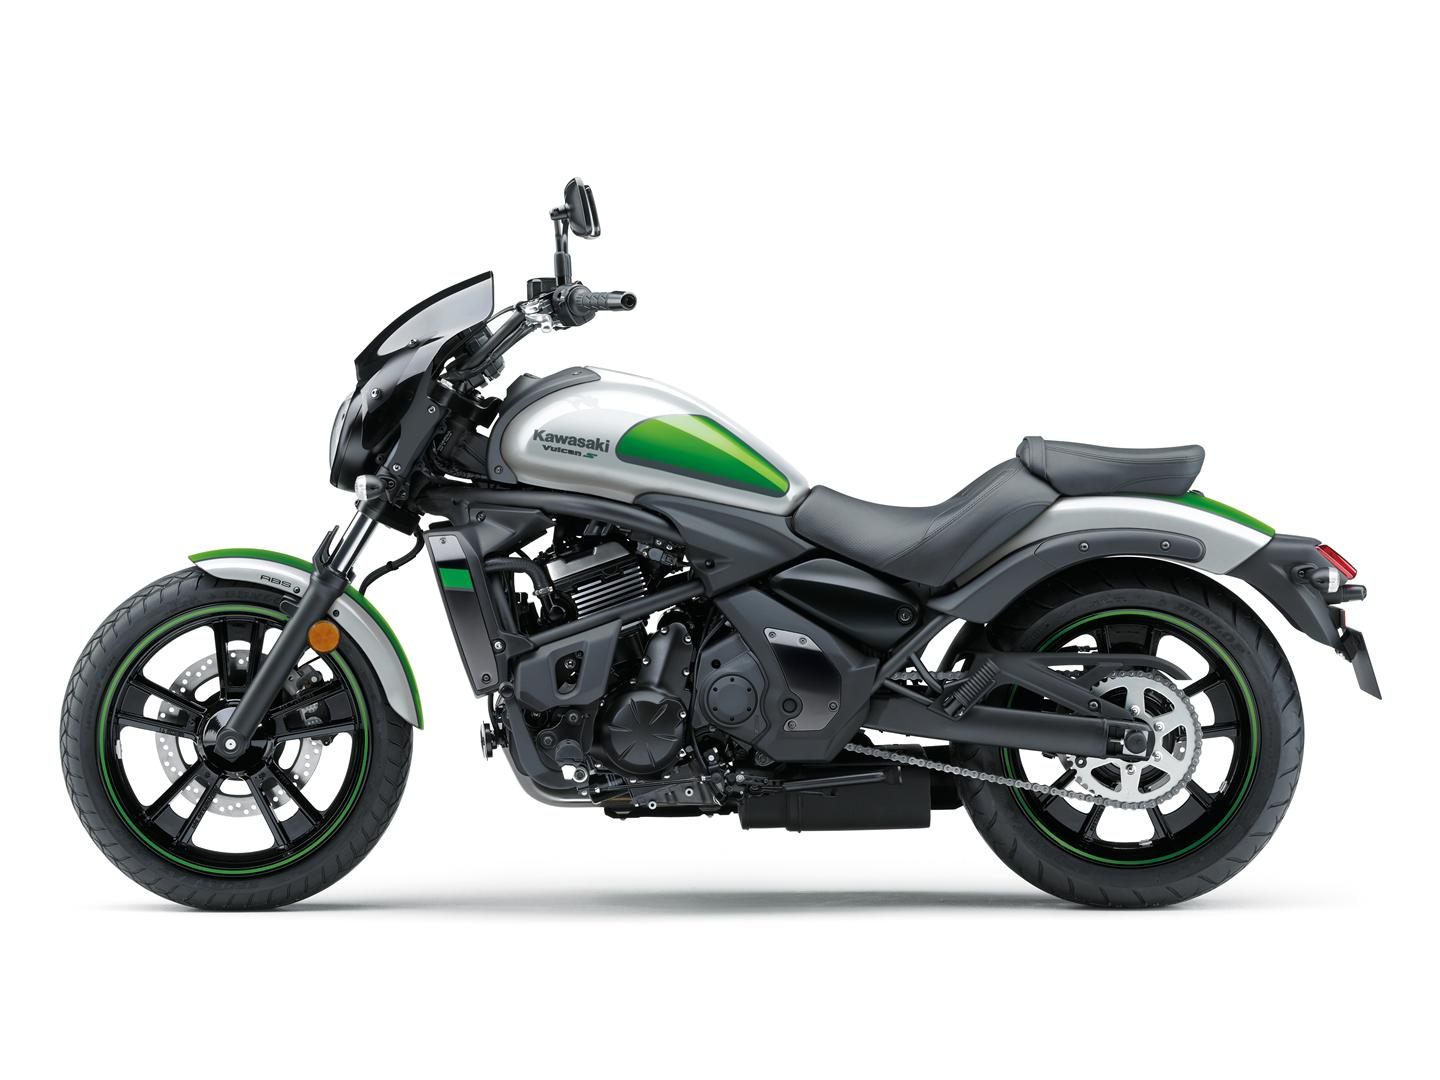 Kawasaki 650 vulcan s moto angers pro bike for A m motors